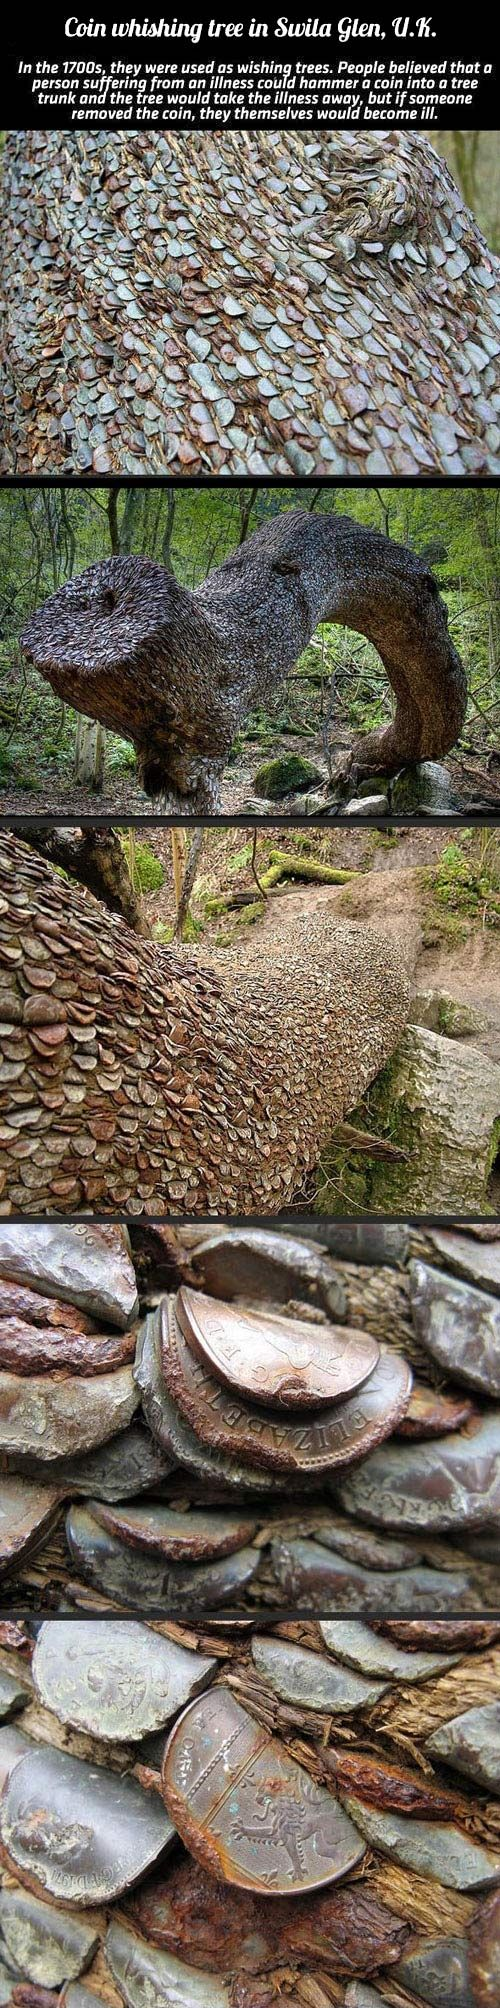 The coin wishing tree. Amazing!!